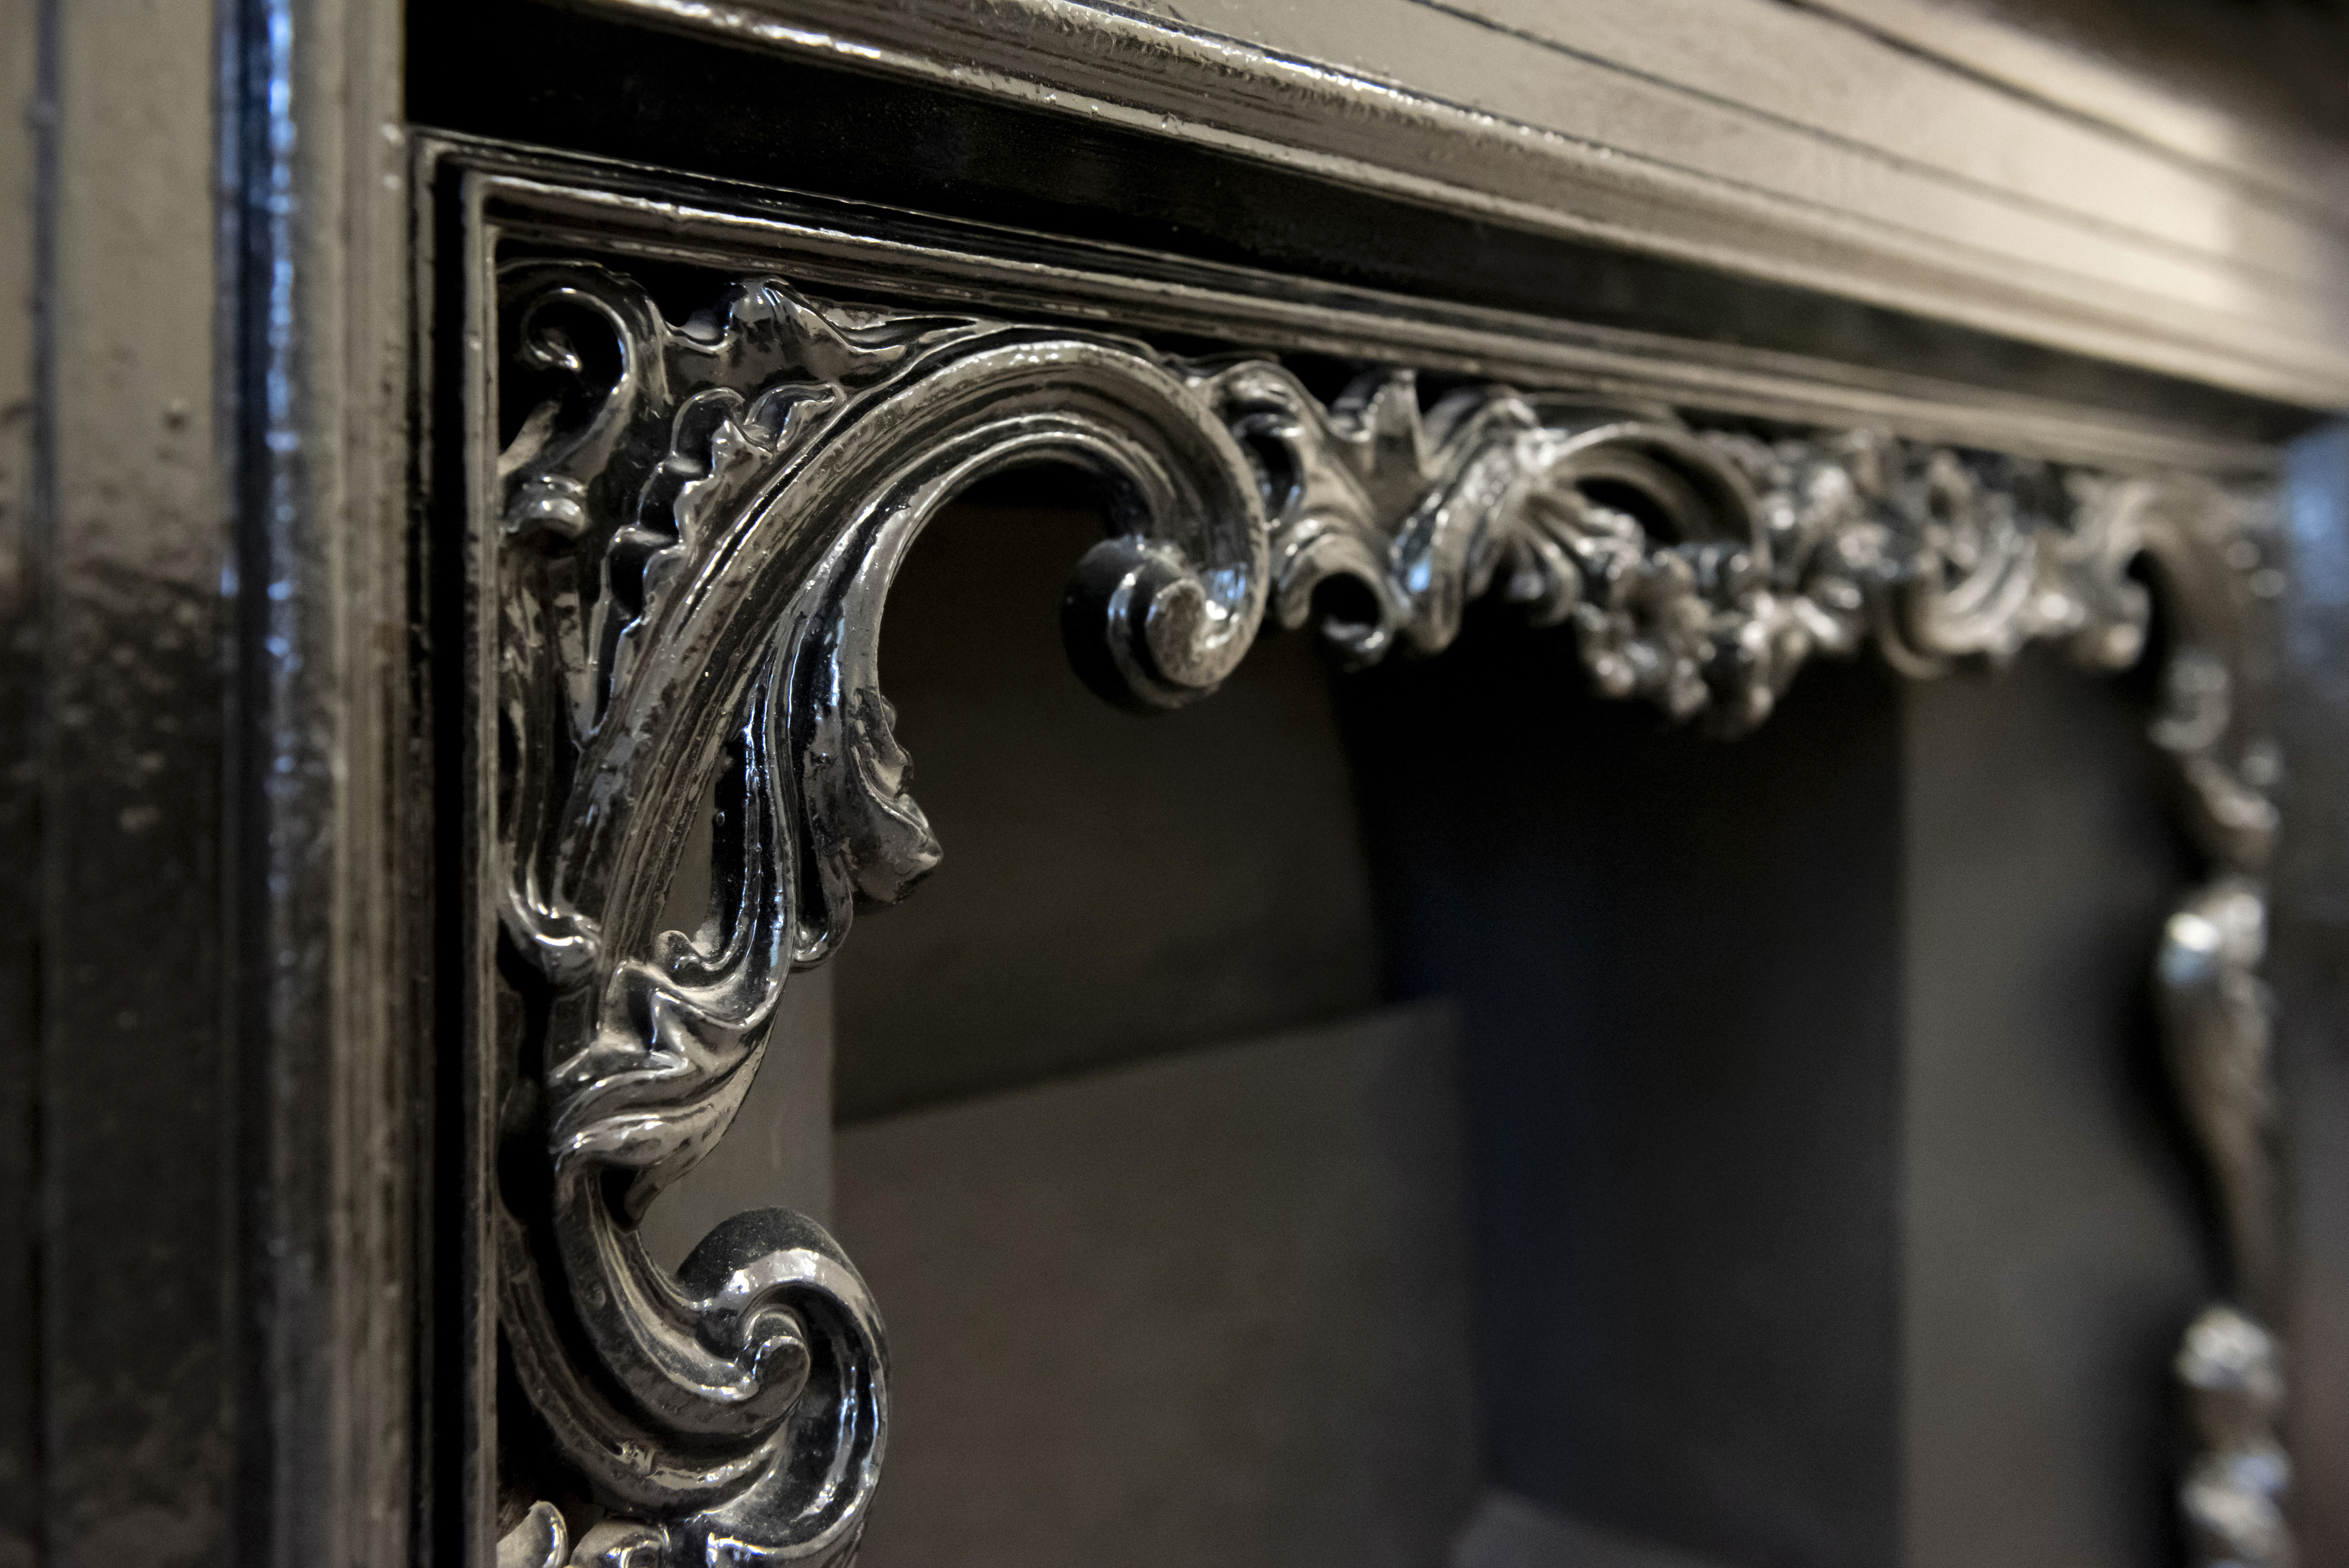 LIDC fireplace detail